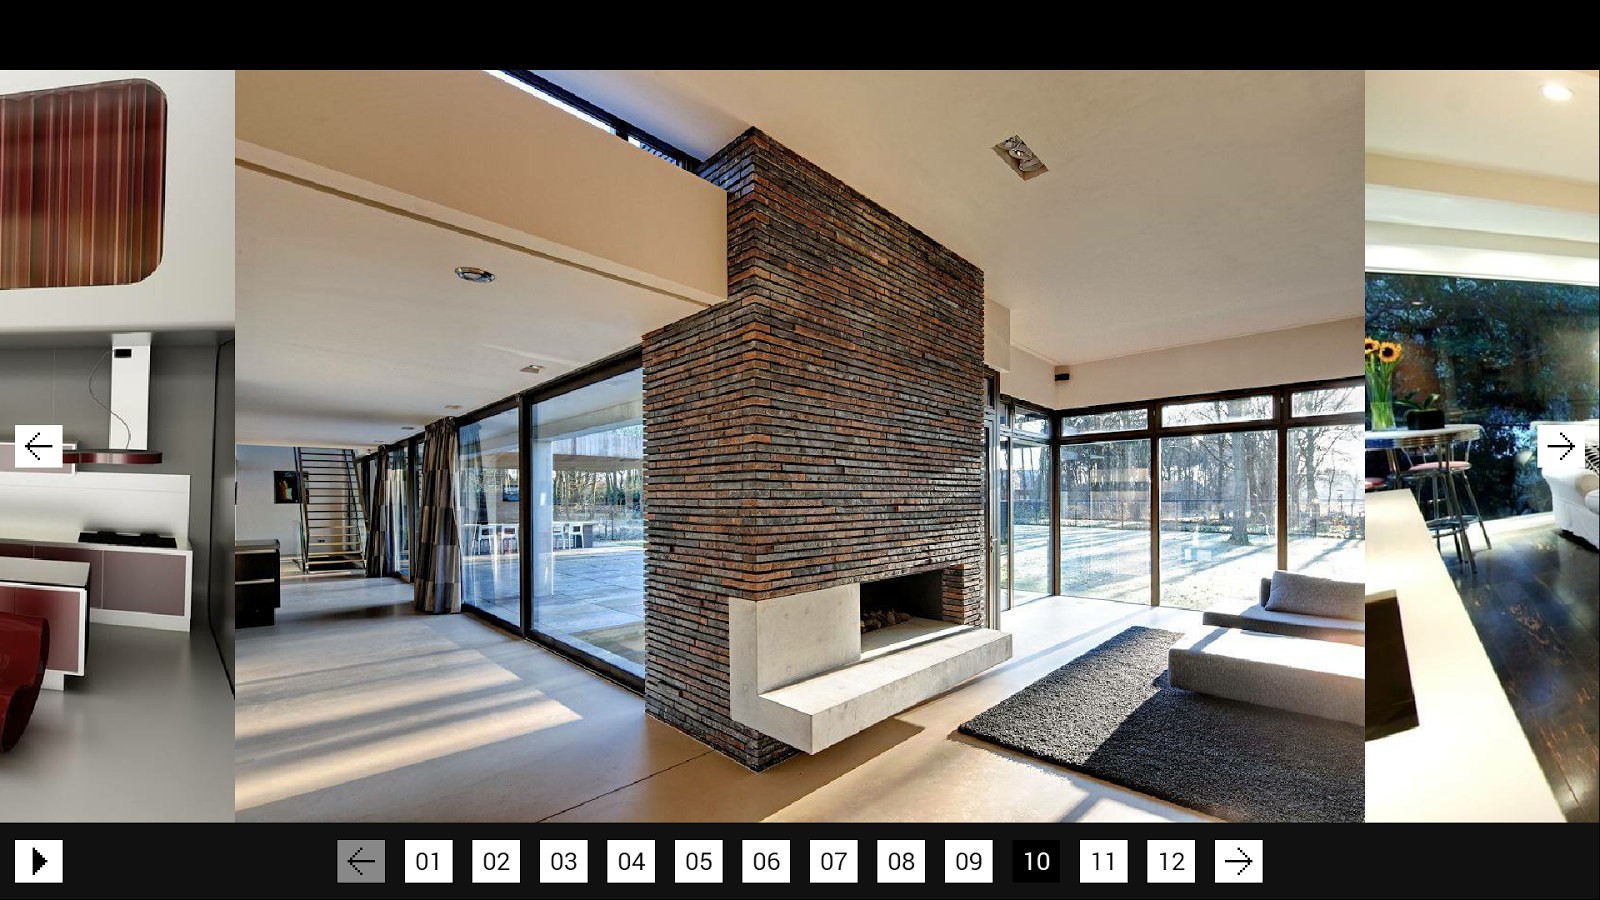 Interior design of home pictures - Home Interior Design Screenshot